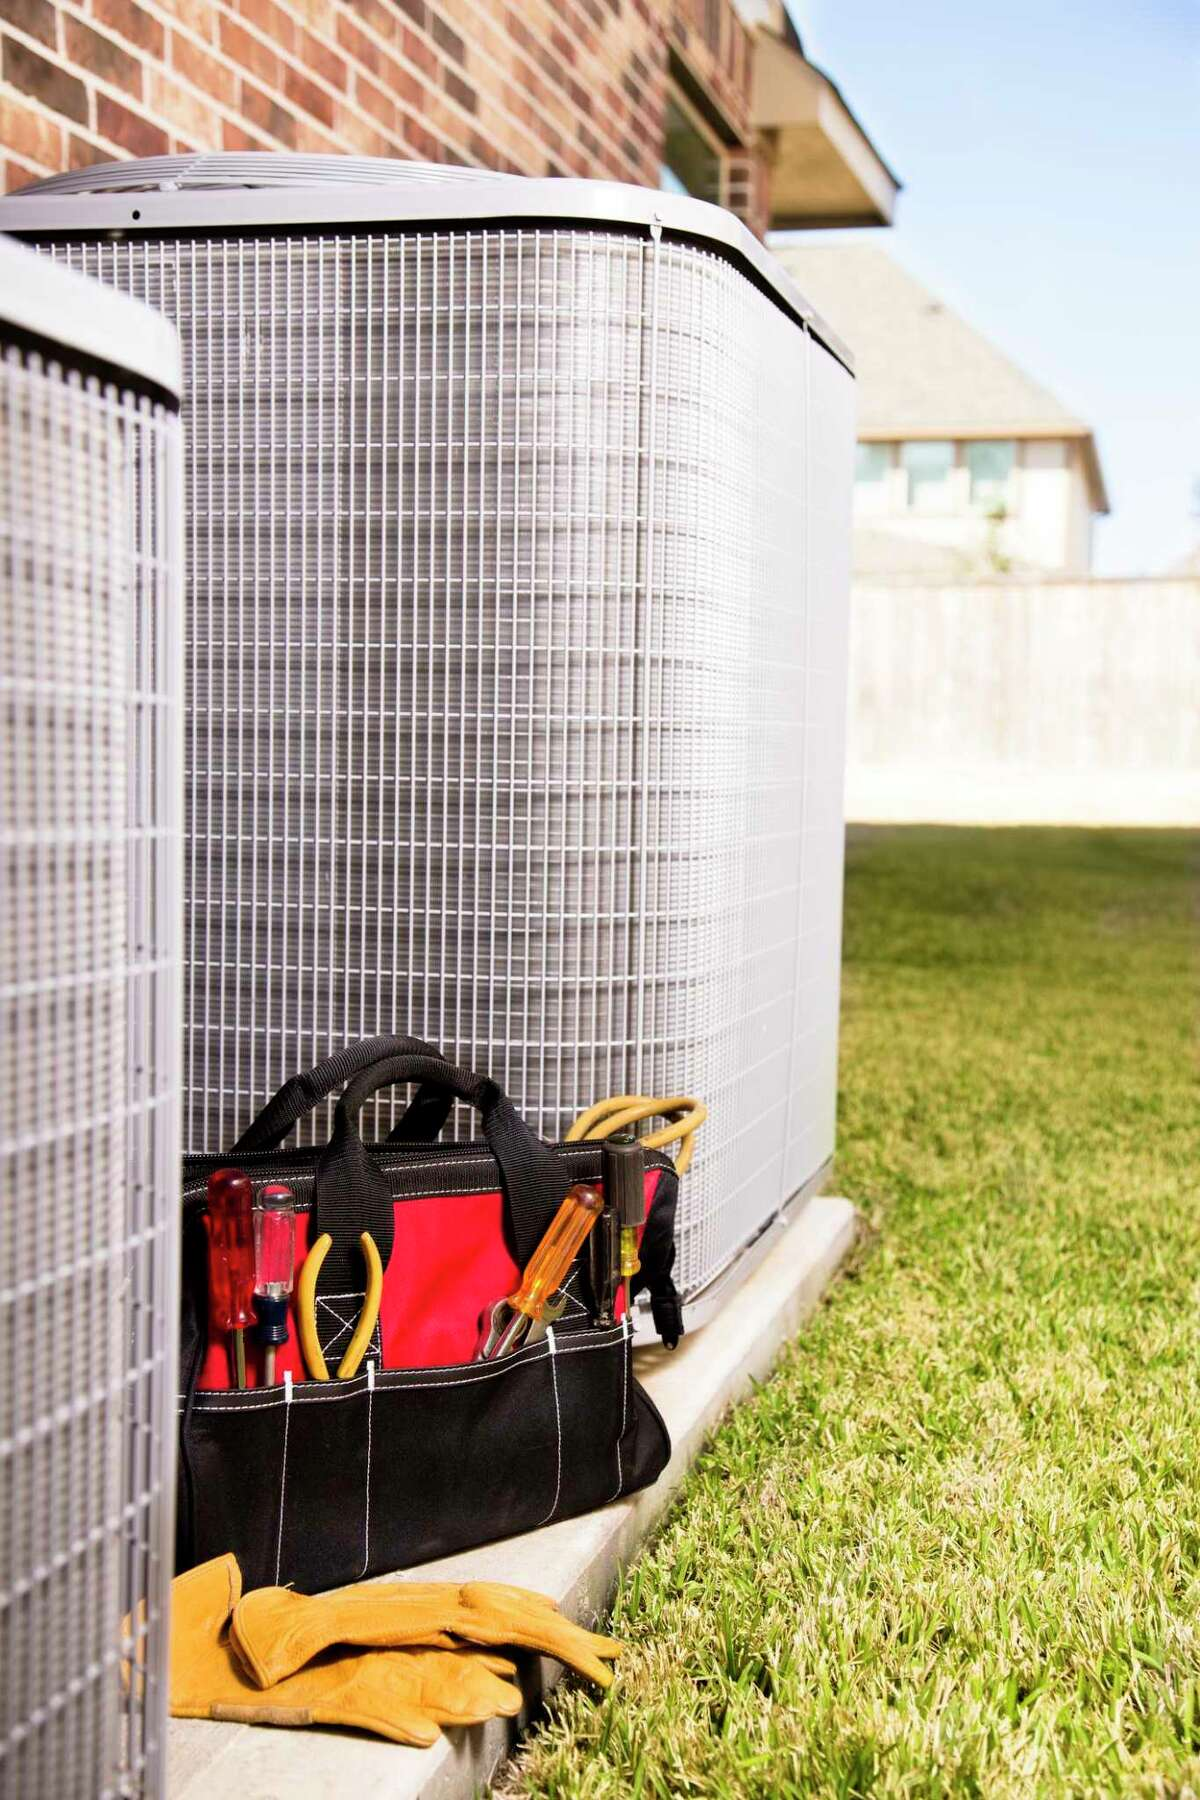 CenterPoint, through a partner, is offering home warranties on household systems such as air conditioning.